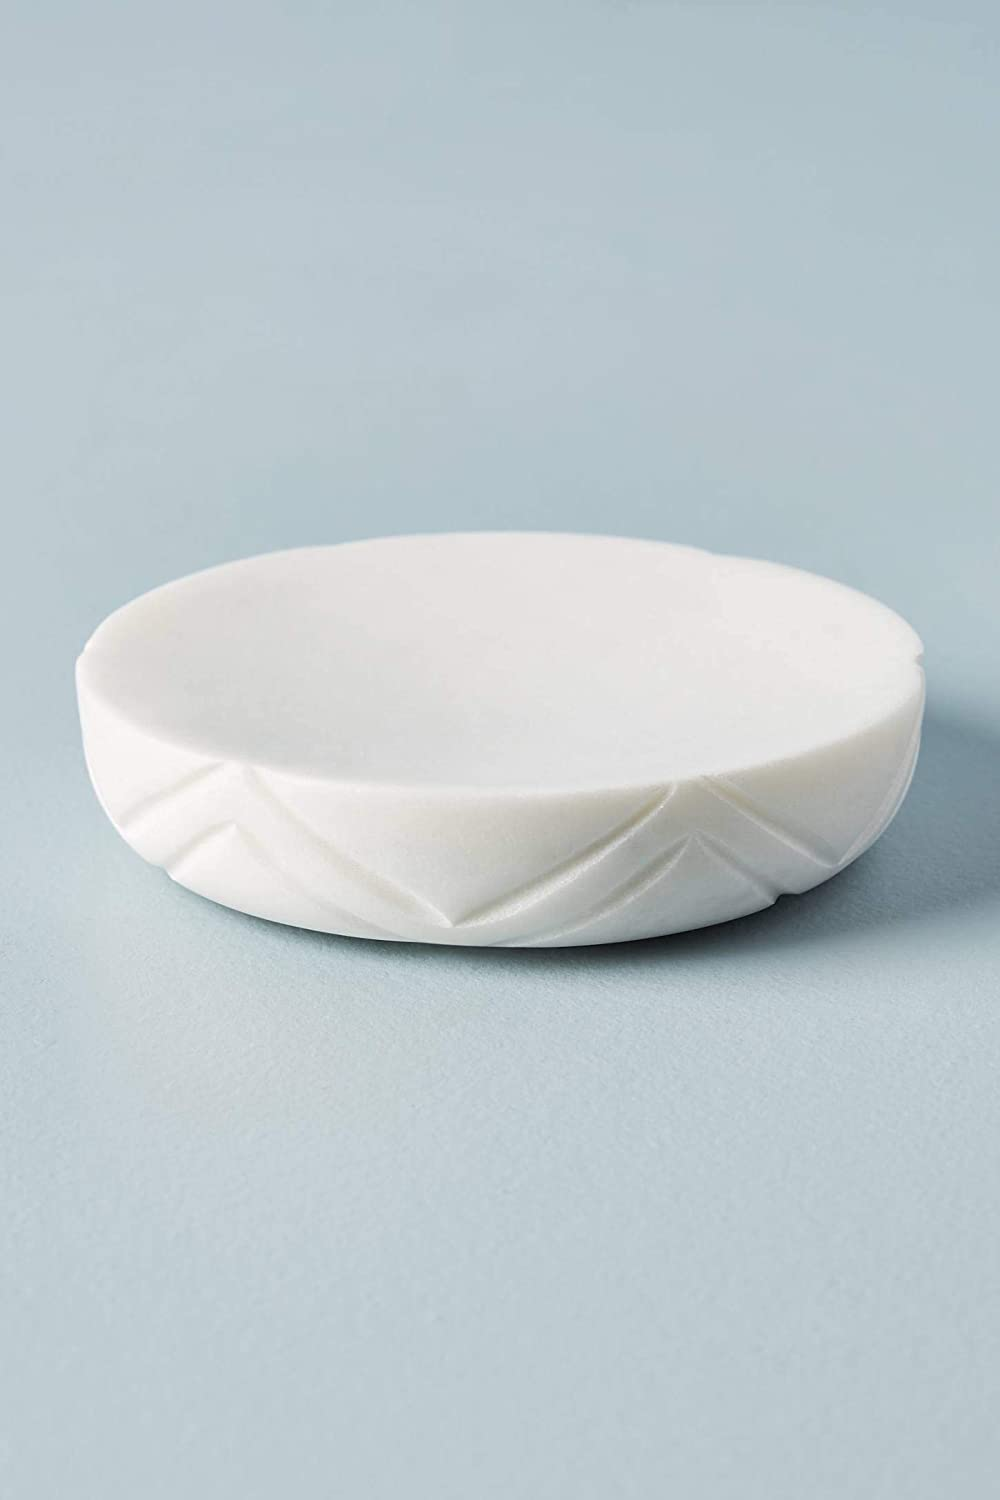 GMRS Home Carved White Marble Soap Dish, Sponge Dish Tray for Bathroom or Shower Also Great for Kitchen.